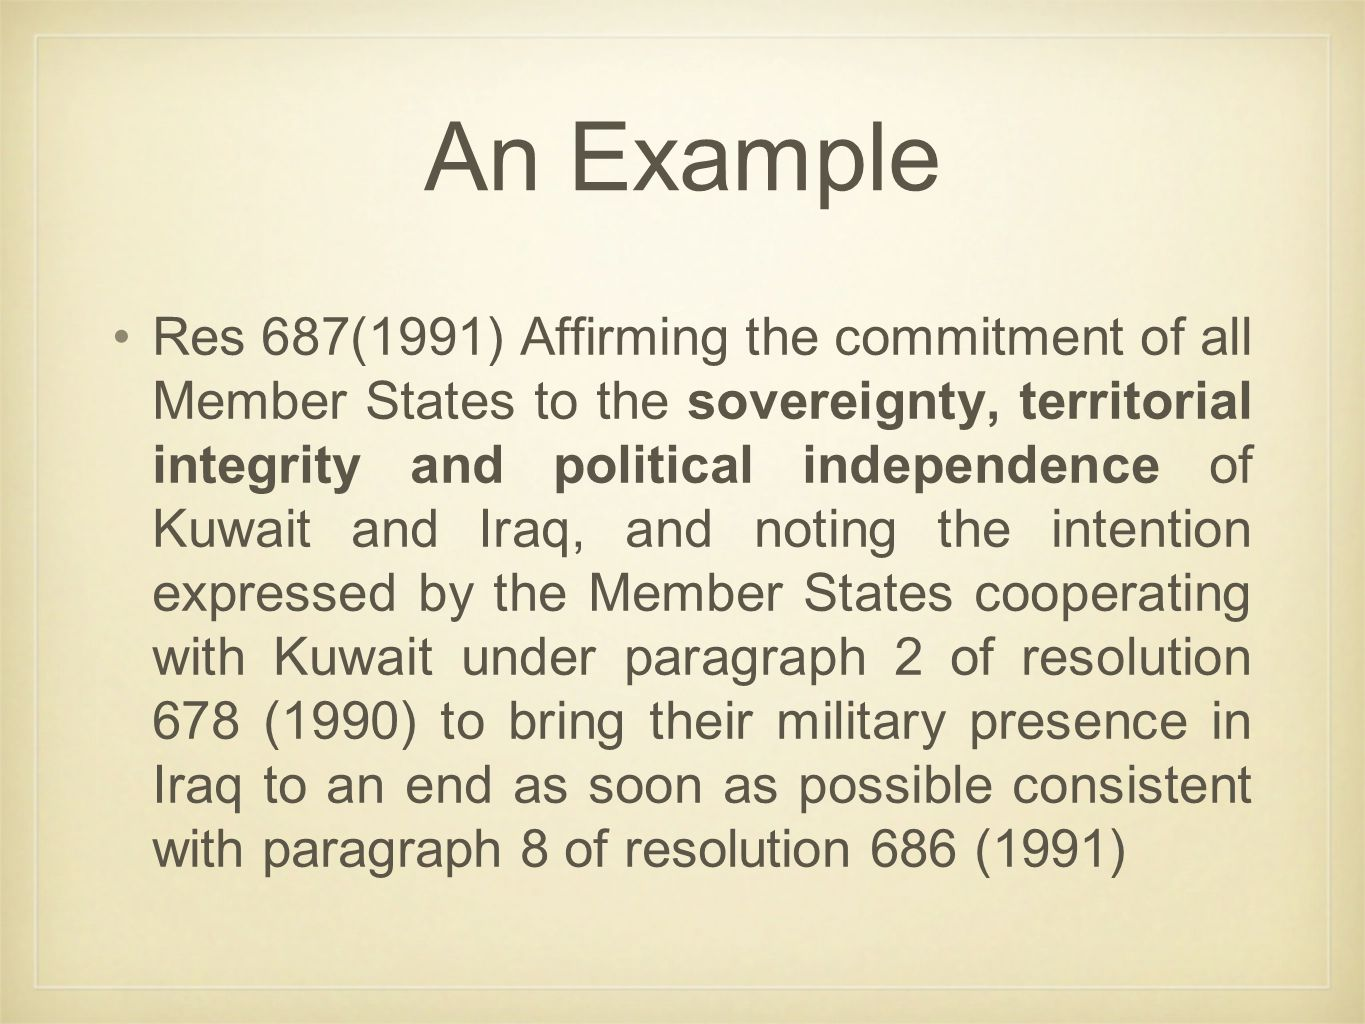 Res 687(1991) Affirming the commitment of all Member States to the sovereignty, territorial integrity and political independence of Kuwait and Iraq, and noting the intention expressed by the Member States cooperating with Kuwait under paragraph 2 of resolution 678 (1990) to bring their military presence in Iraq to an end as soon as possible consistent with paragraph 8 of resolution 686 (1991) An Example